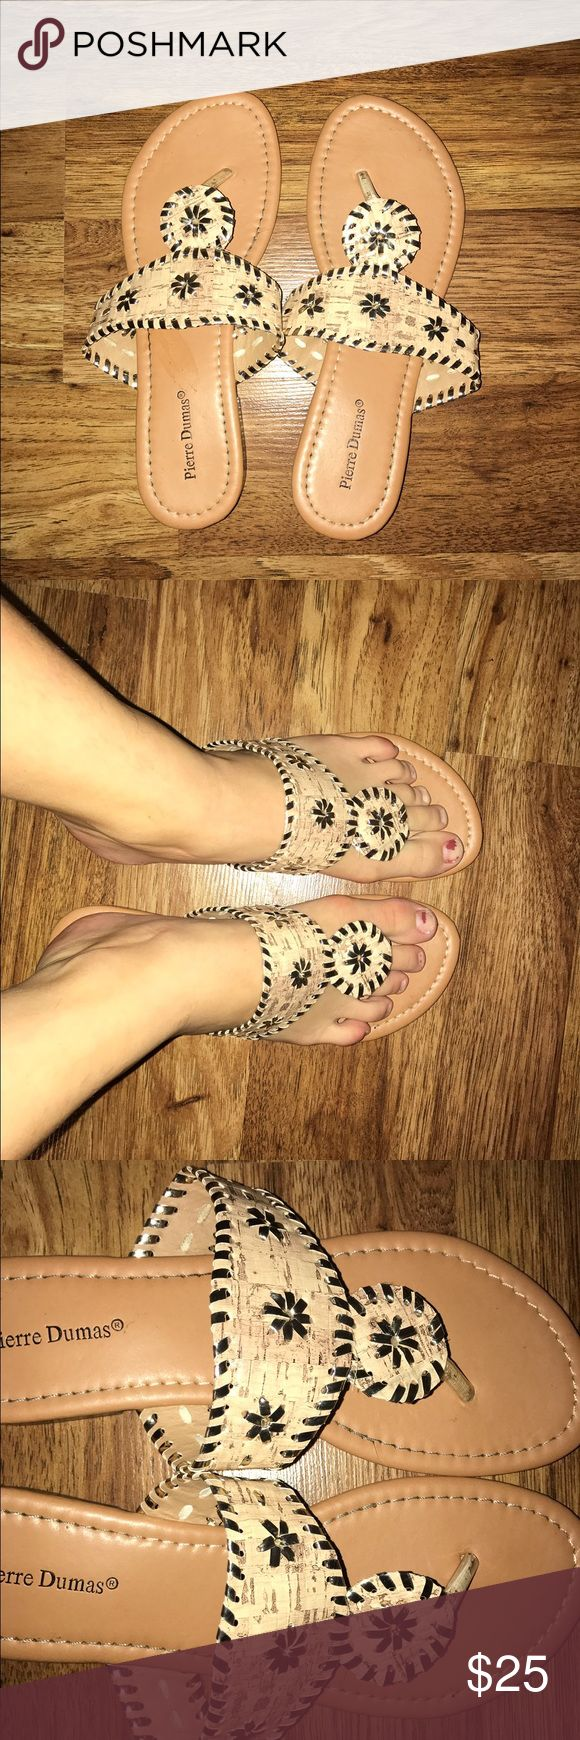 Jack rogers These are fake jack rogers that look exactly like the real ones you can even tell them apart when you have them on they are brand new and have no flaws Jack Rogers Shoes Sandals